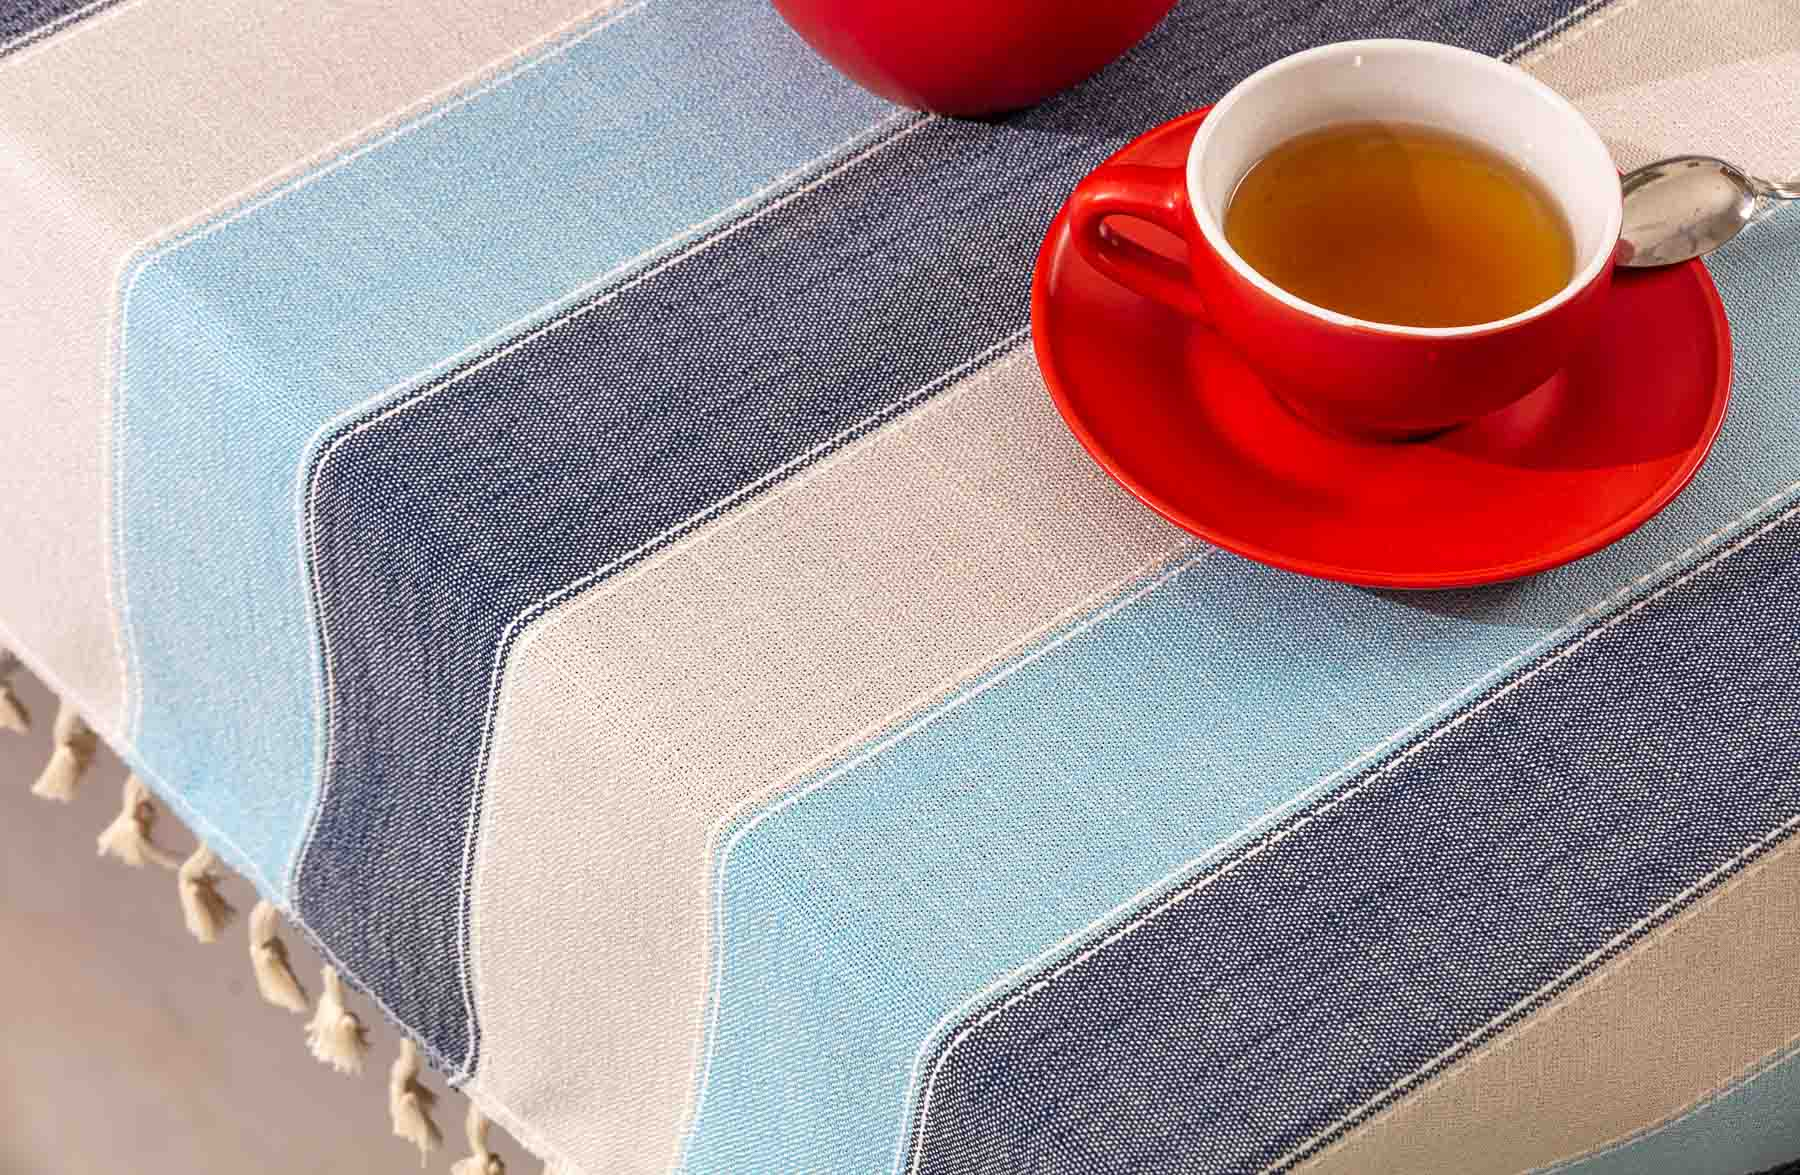 Table Cloth with tea cup lifestyle product photography